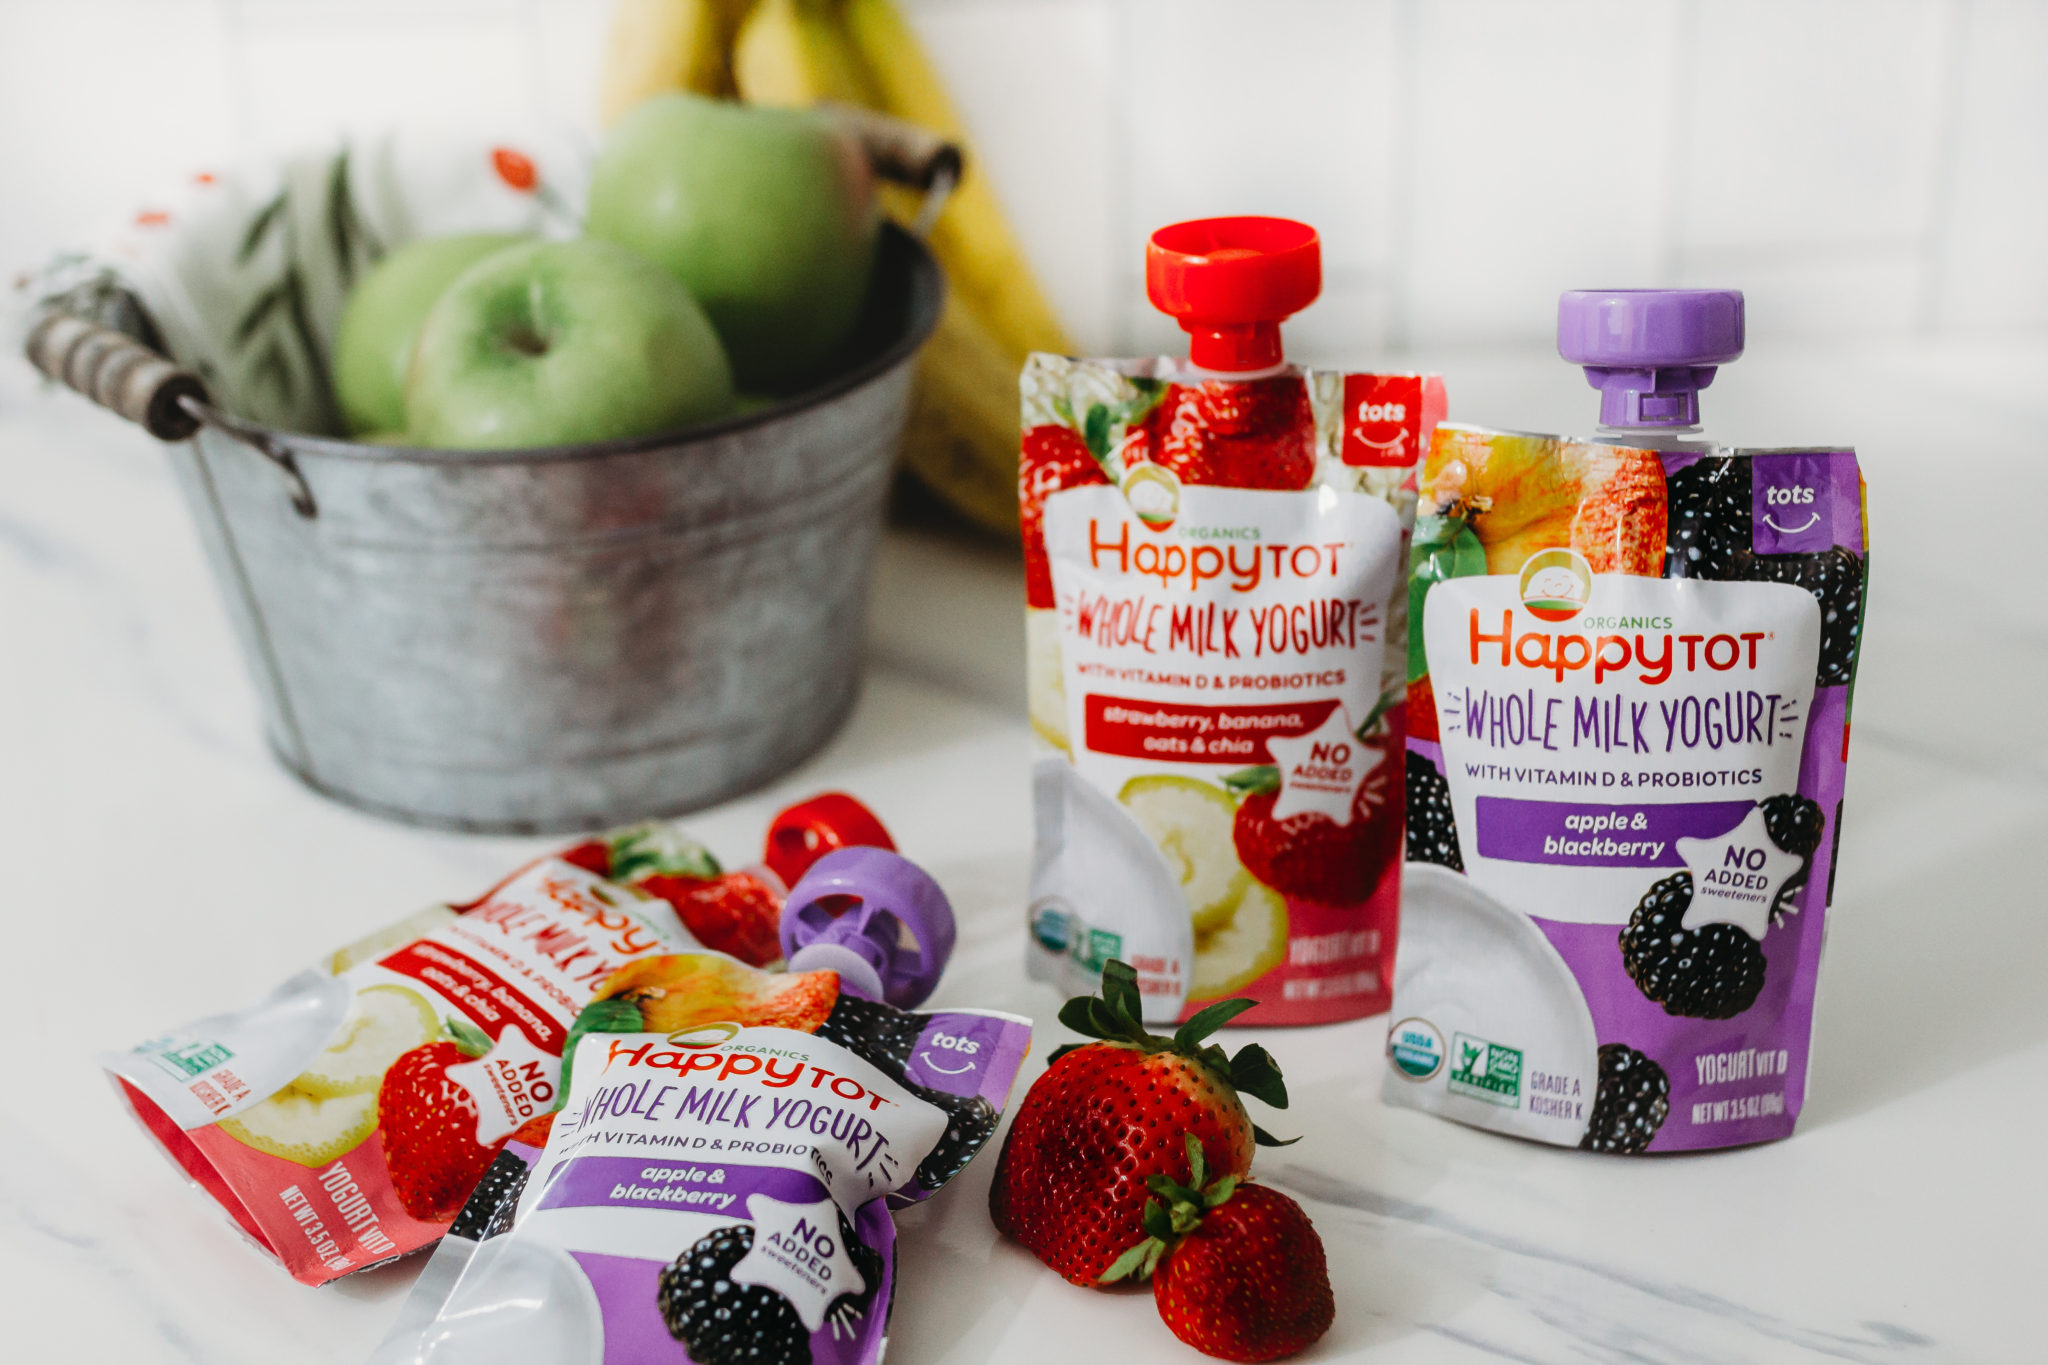 starting solids with your baby, whole milk baby yogurt, Happy Family organic yogurt #ad #HappyFamilyTarget